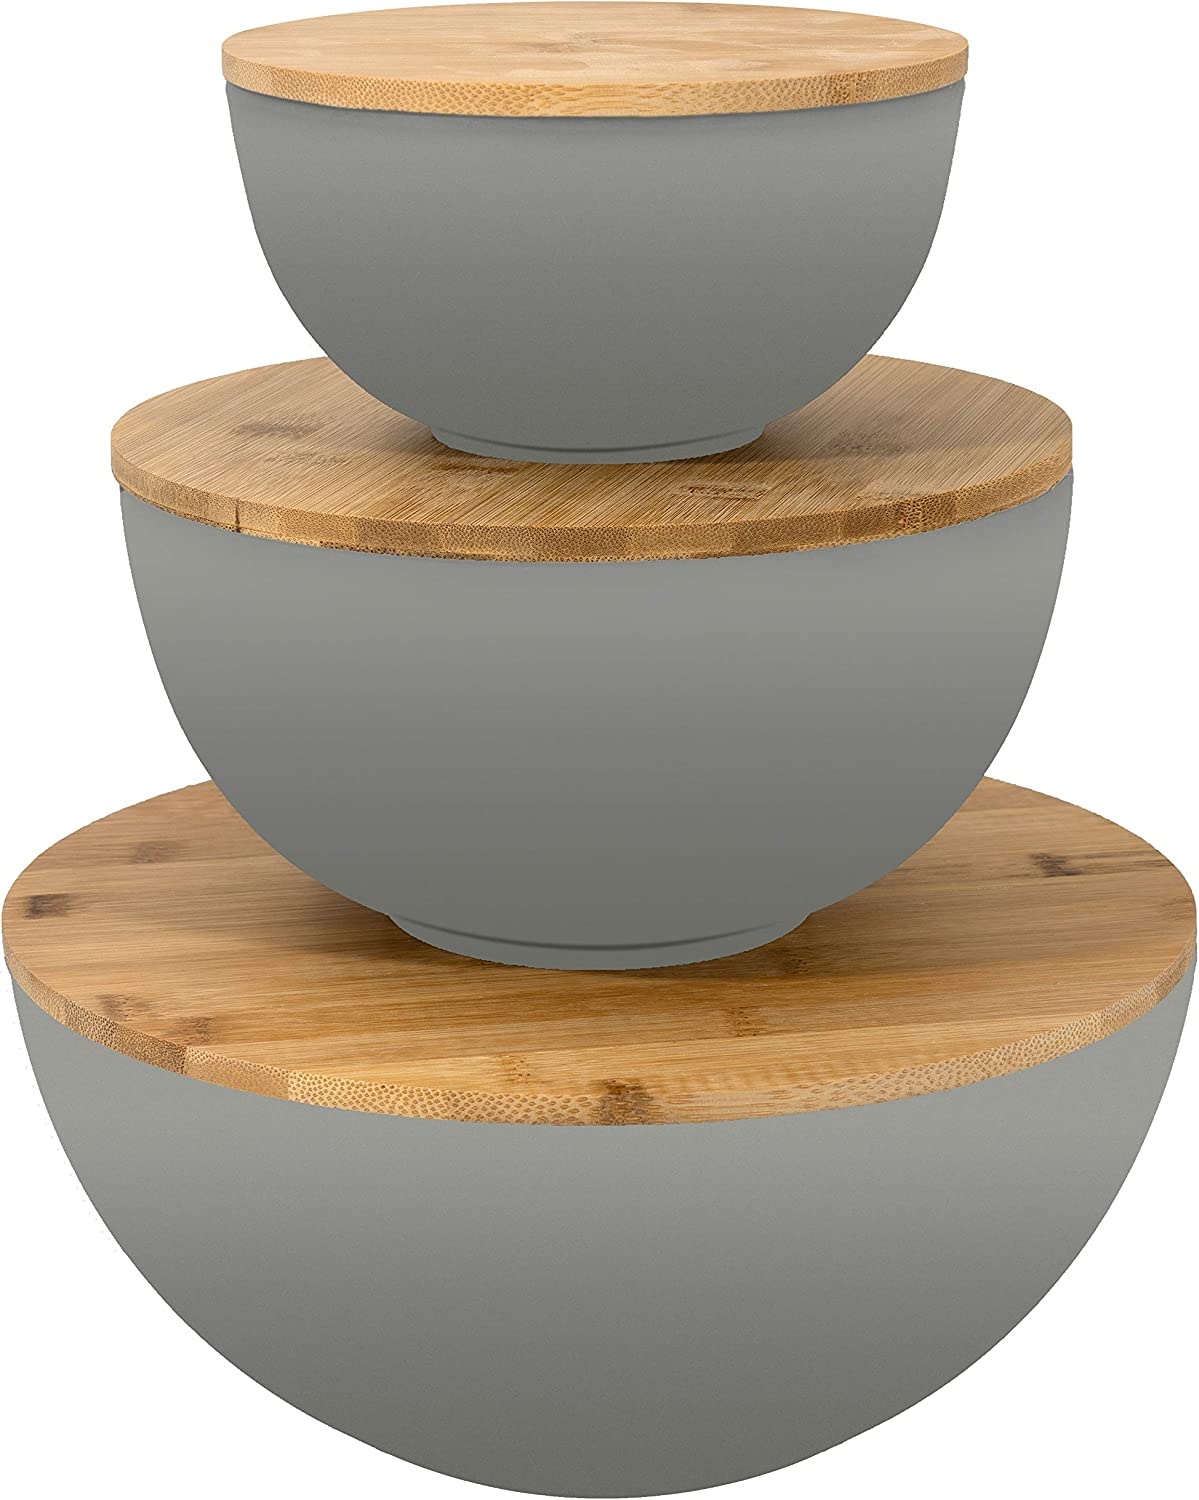 Salad Bowl with Lid - Large Salad Bowl Set of 3 with Wooden Lids, Bamboo Fibre like Melamine Mixing Bowl & Storage Set for Serving Salad, Wooden Lids also use as Cutting Boards & Wooden Food Platter